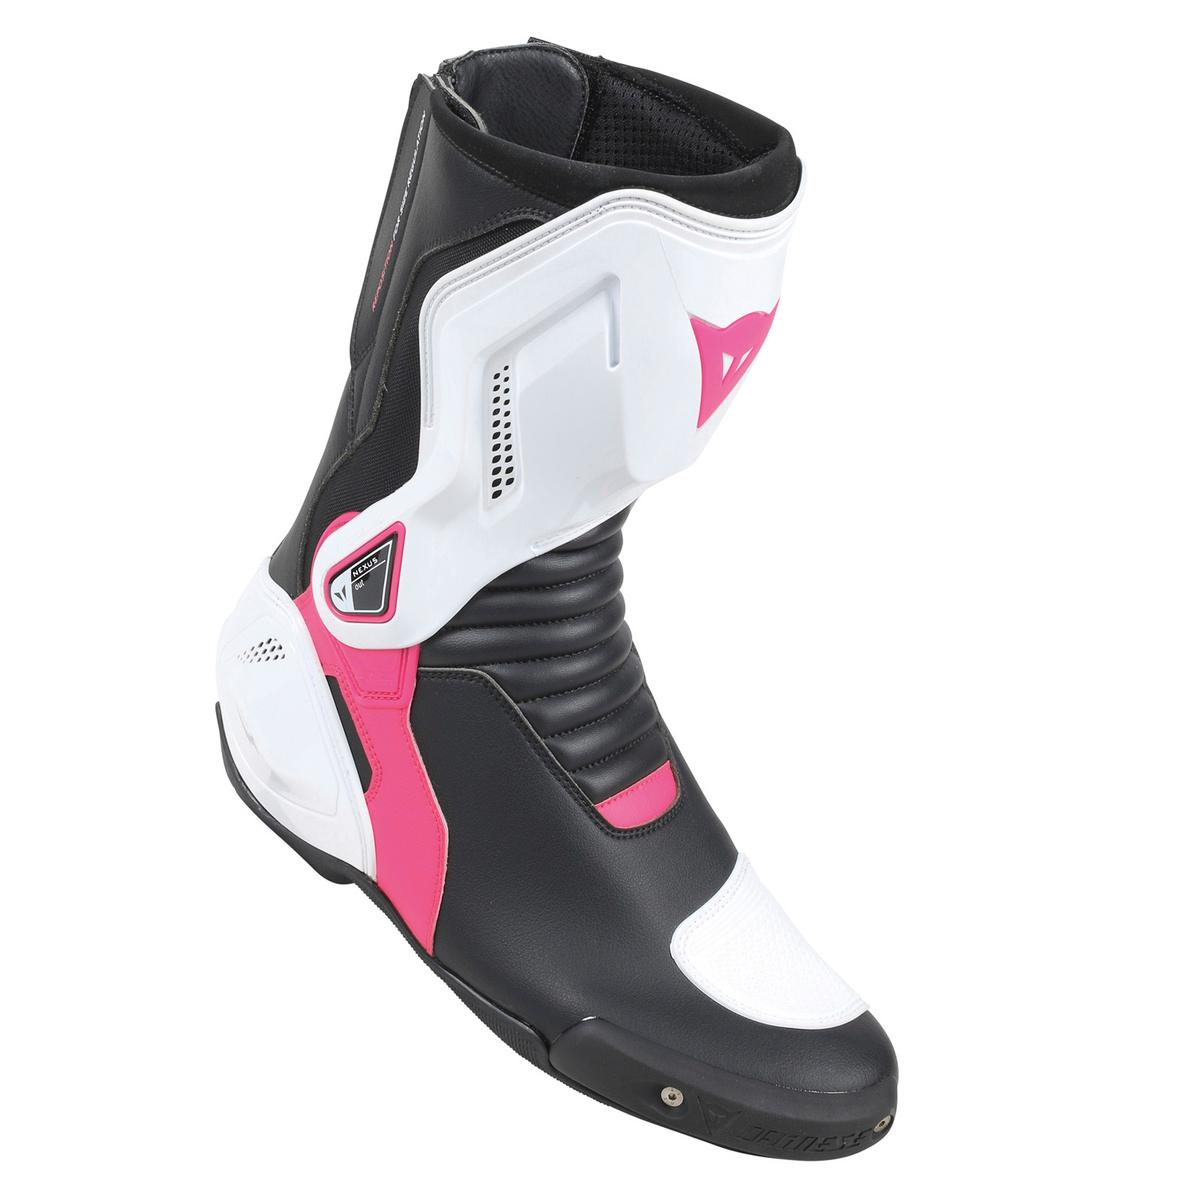 NEXUS LADY BOOTS Dainese Black/White/Fuchsia